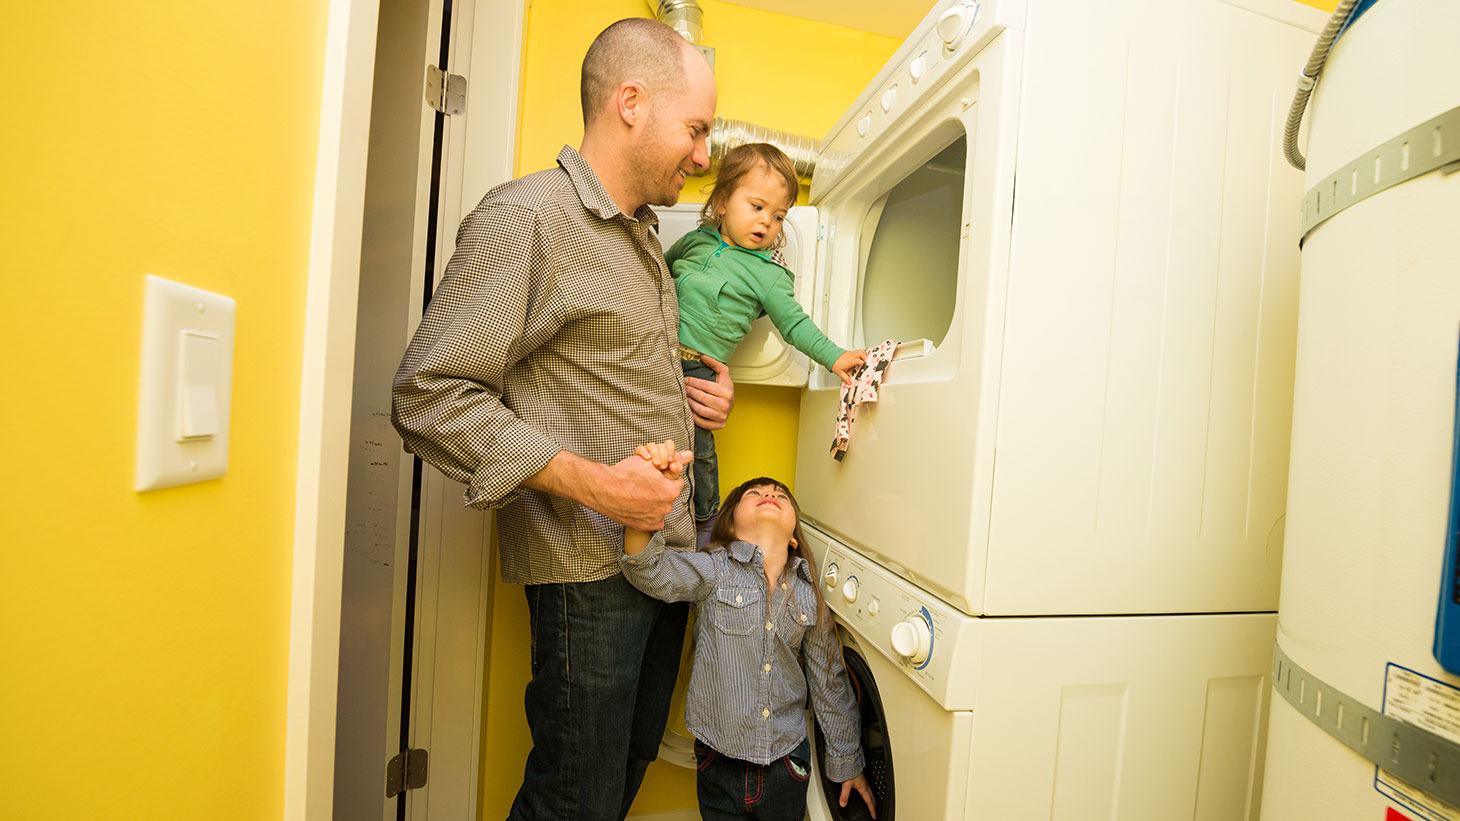 Mastering Disaster Laundry Room Safety